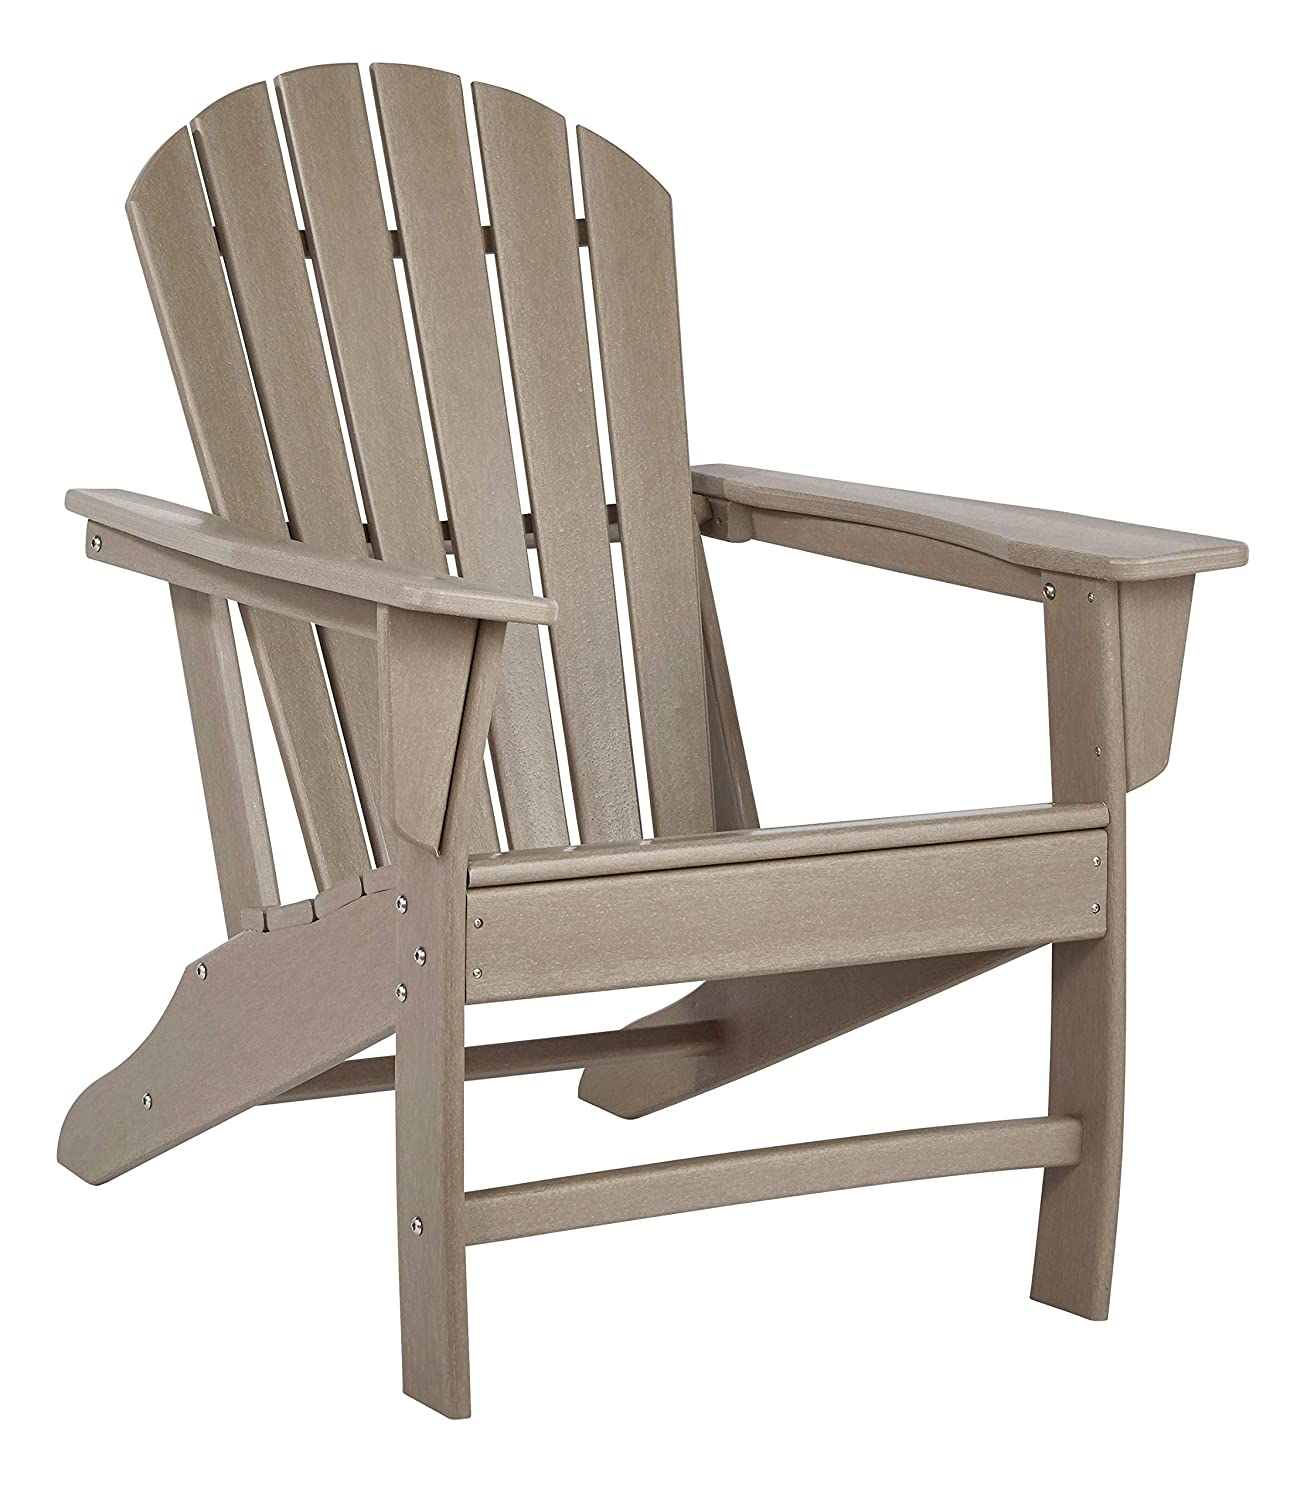 Ashley Furniture Signature Design - Sundown Treasure Outdoor Adirondack Chair - Hard Plastic - Grayish Brown